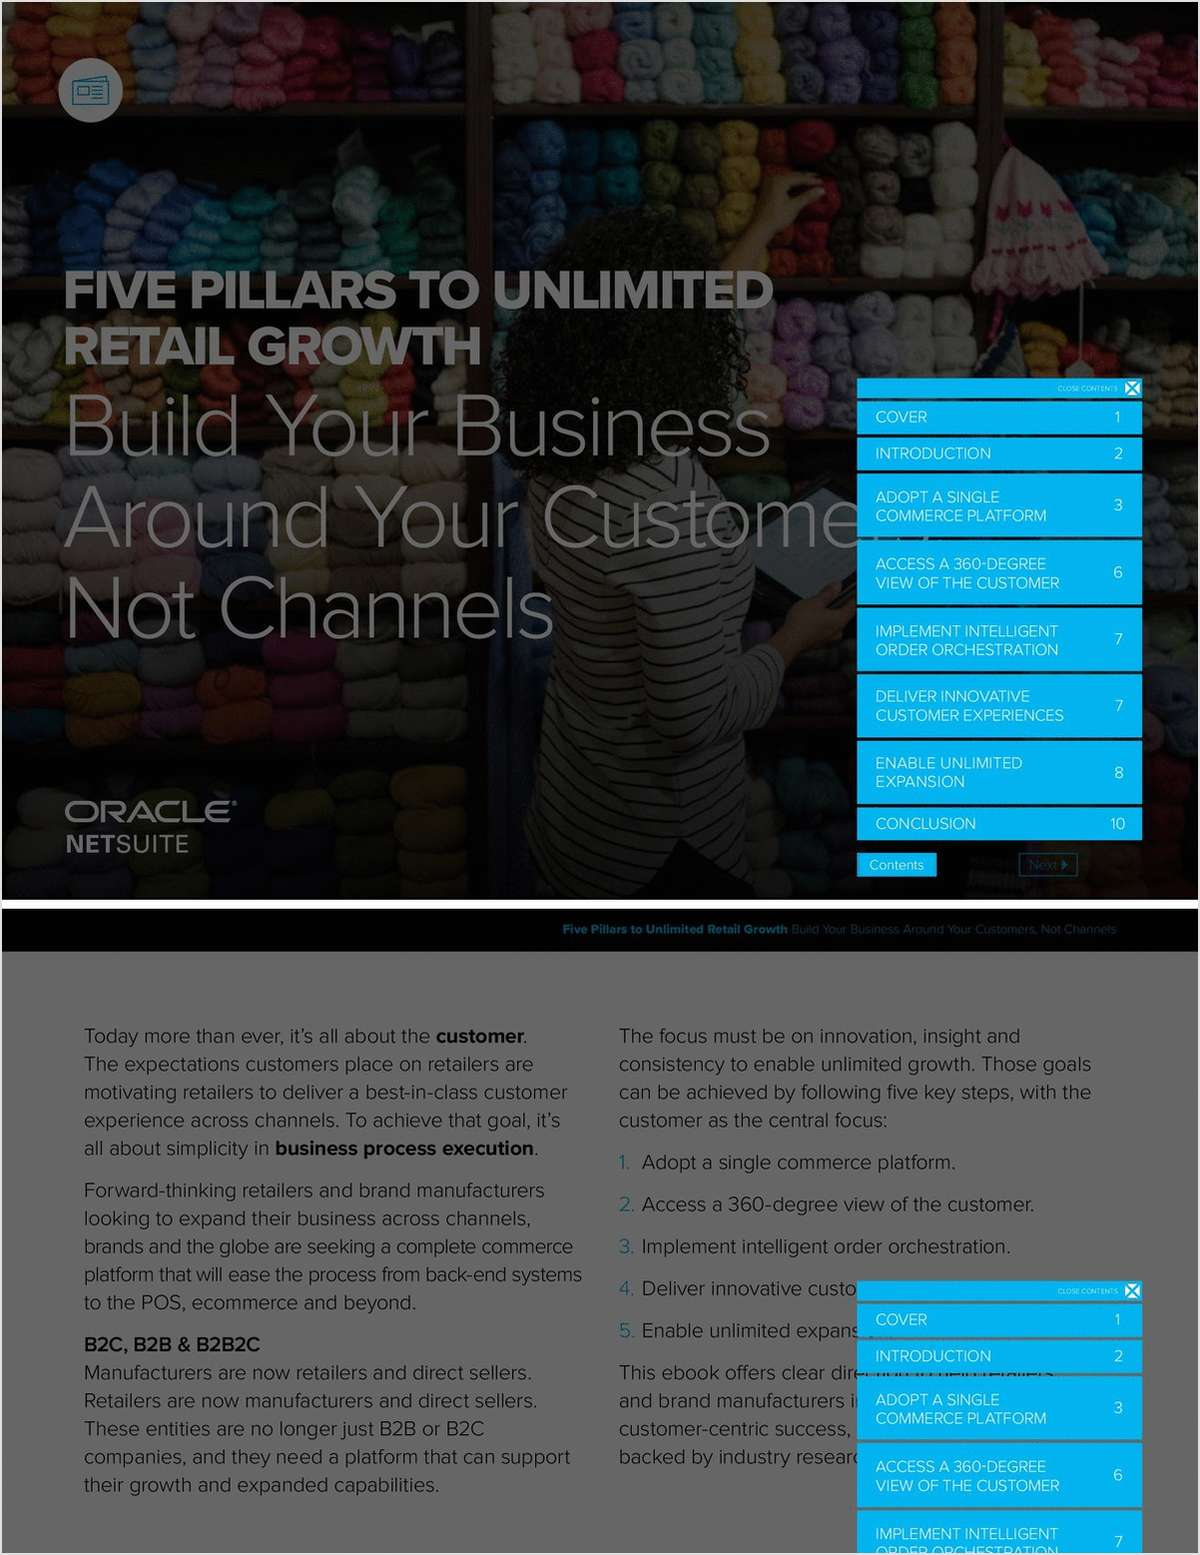 Five Pillars to Unlimited Retail Growth